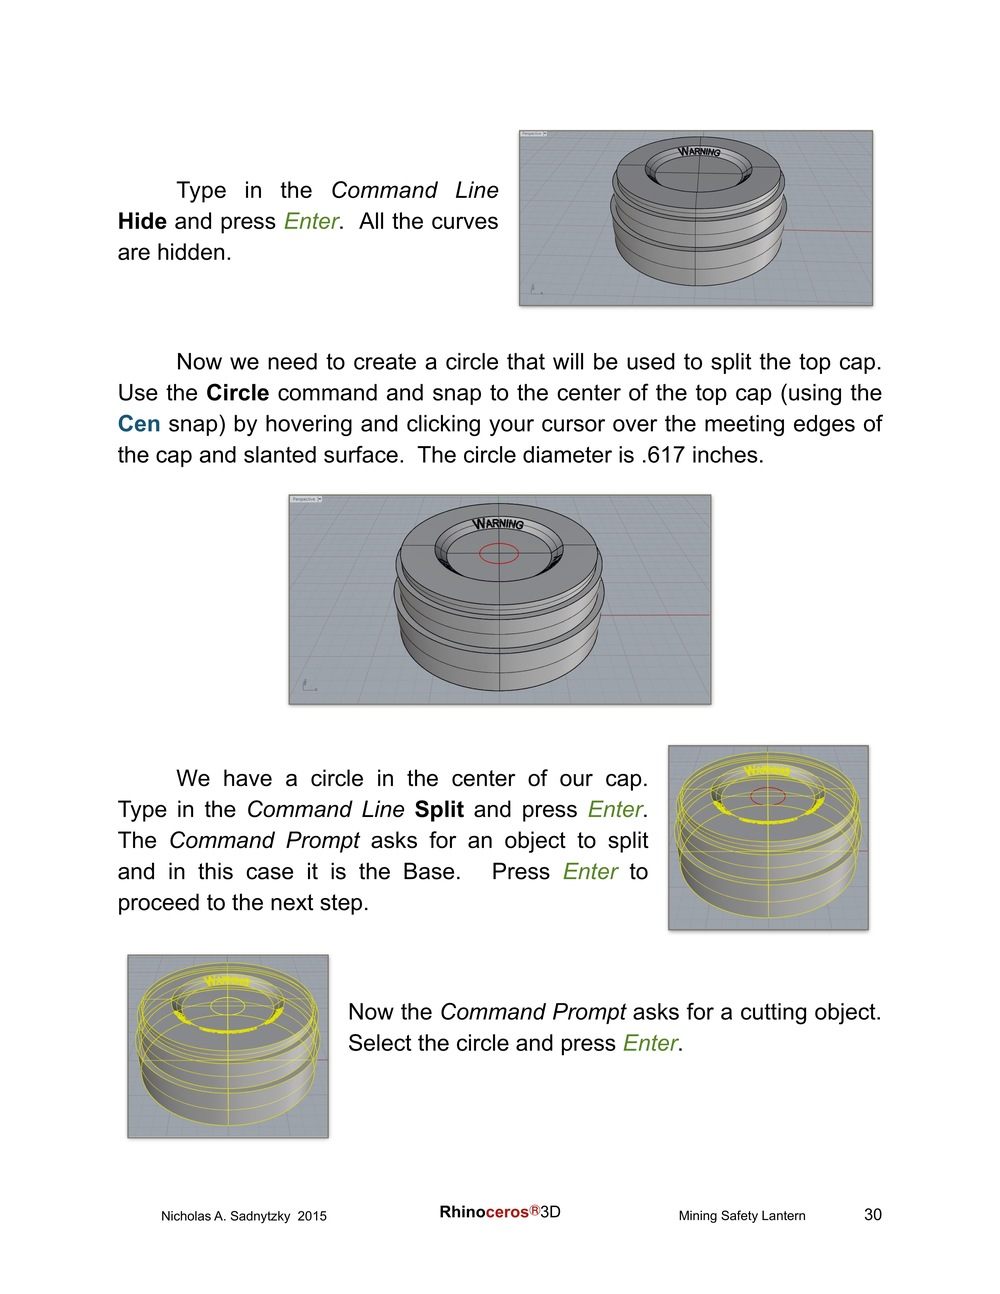 An 1815 Mining Safety Lantern Tutorial _Preview_NAOMS  30.jpeg